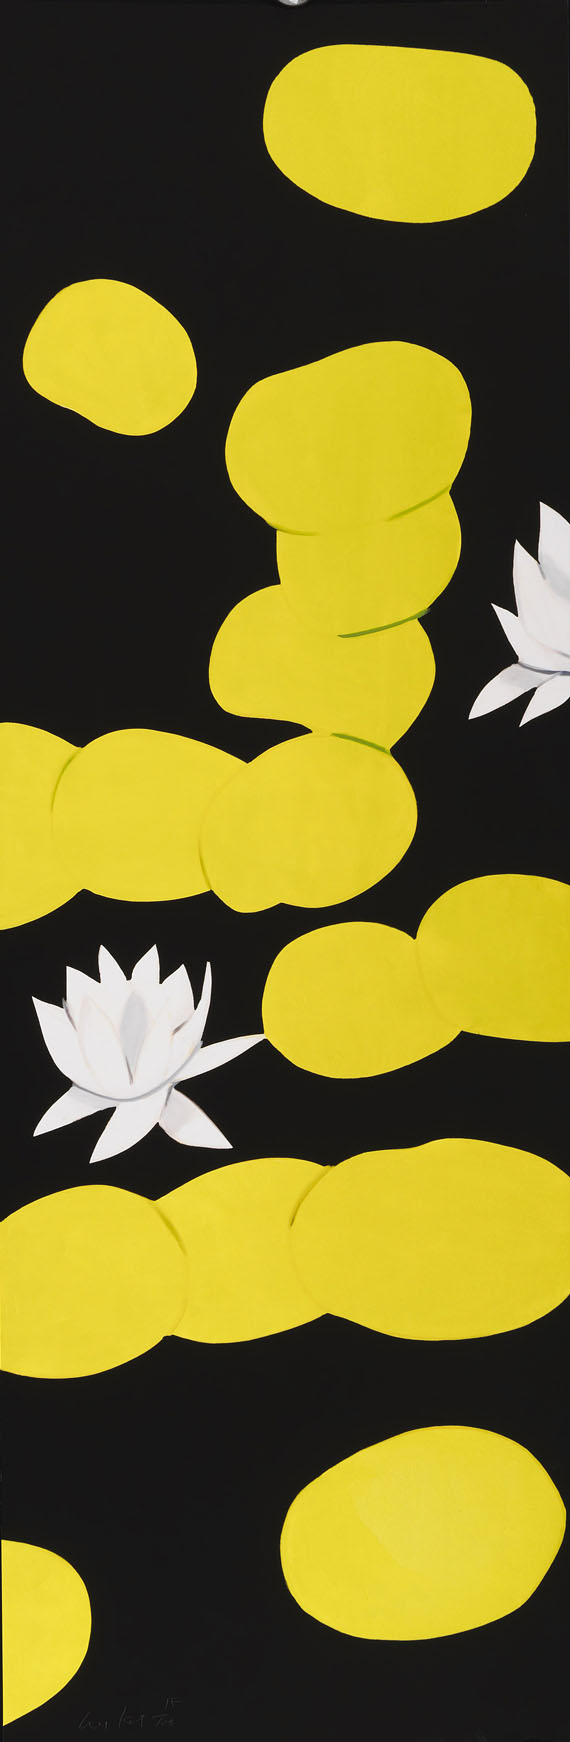 Alex Katz - Hommage to Monet (Triptychon) -